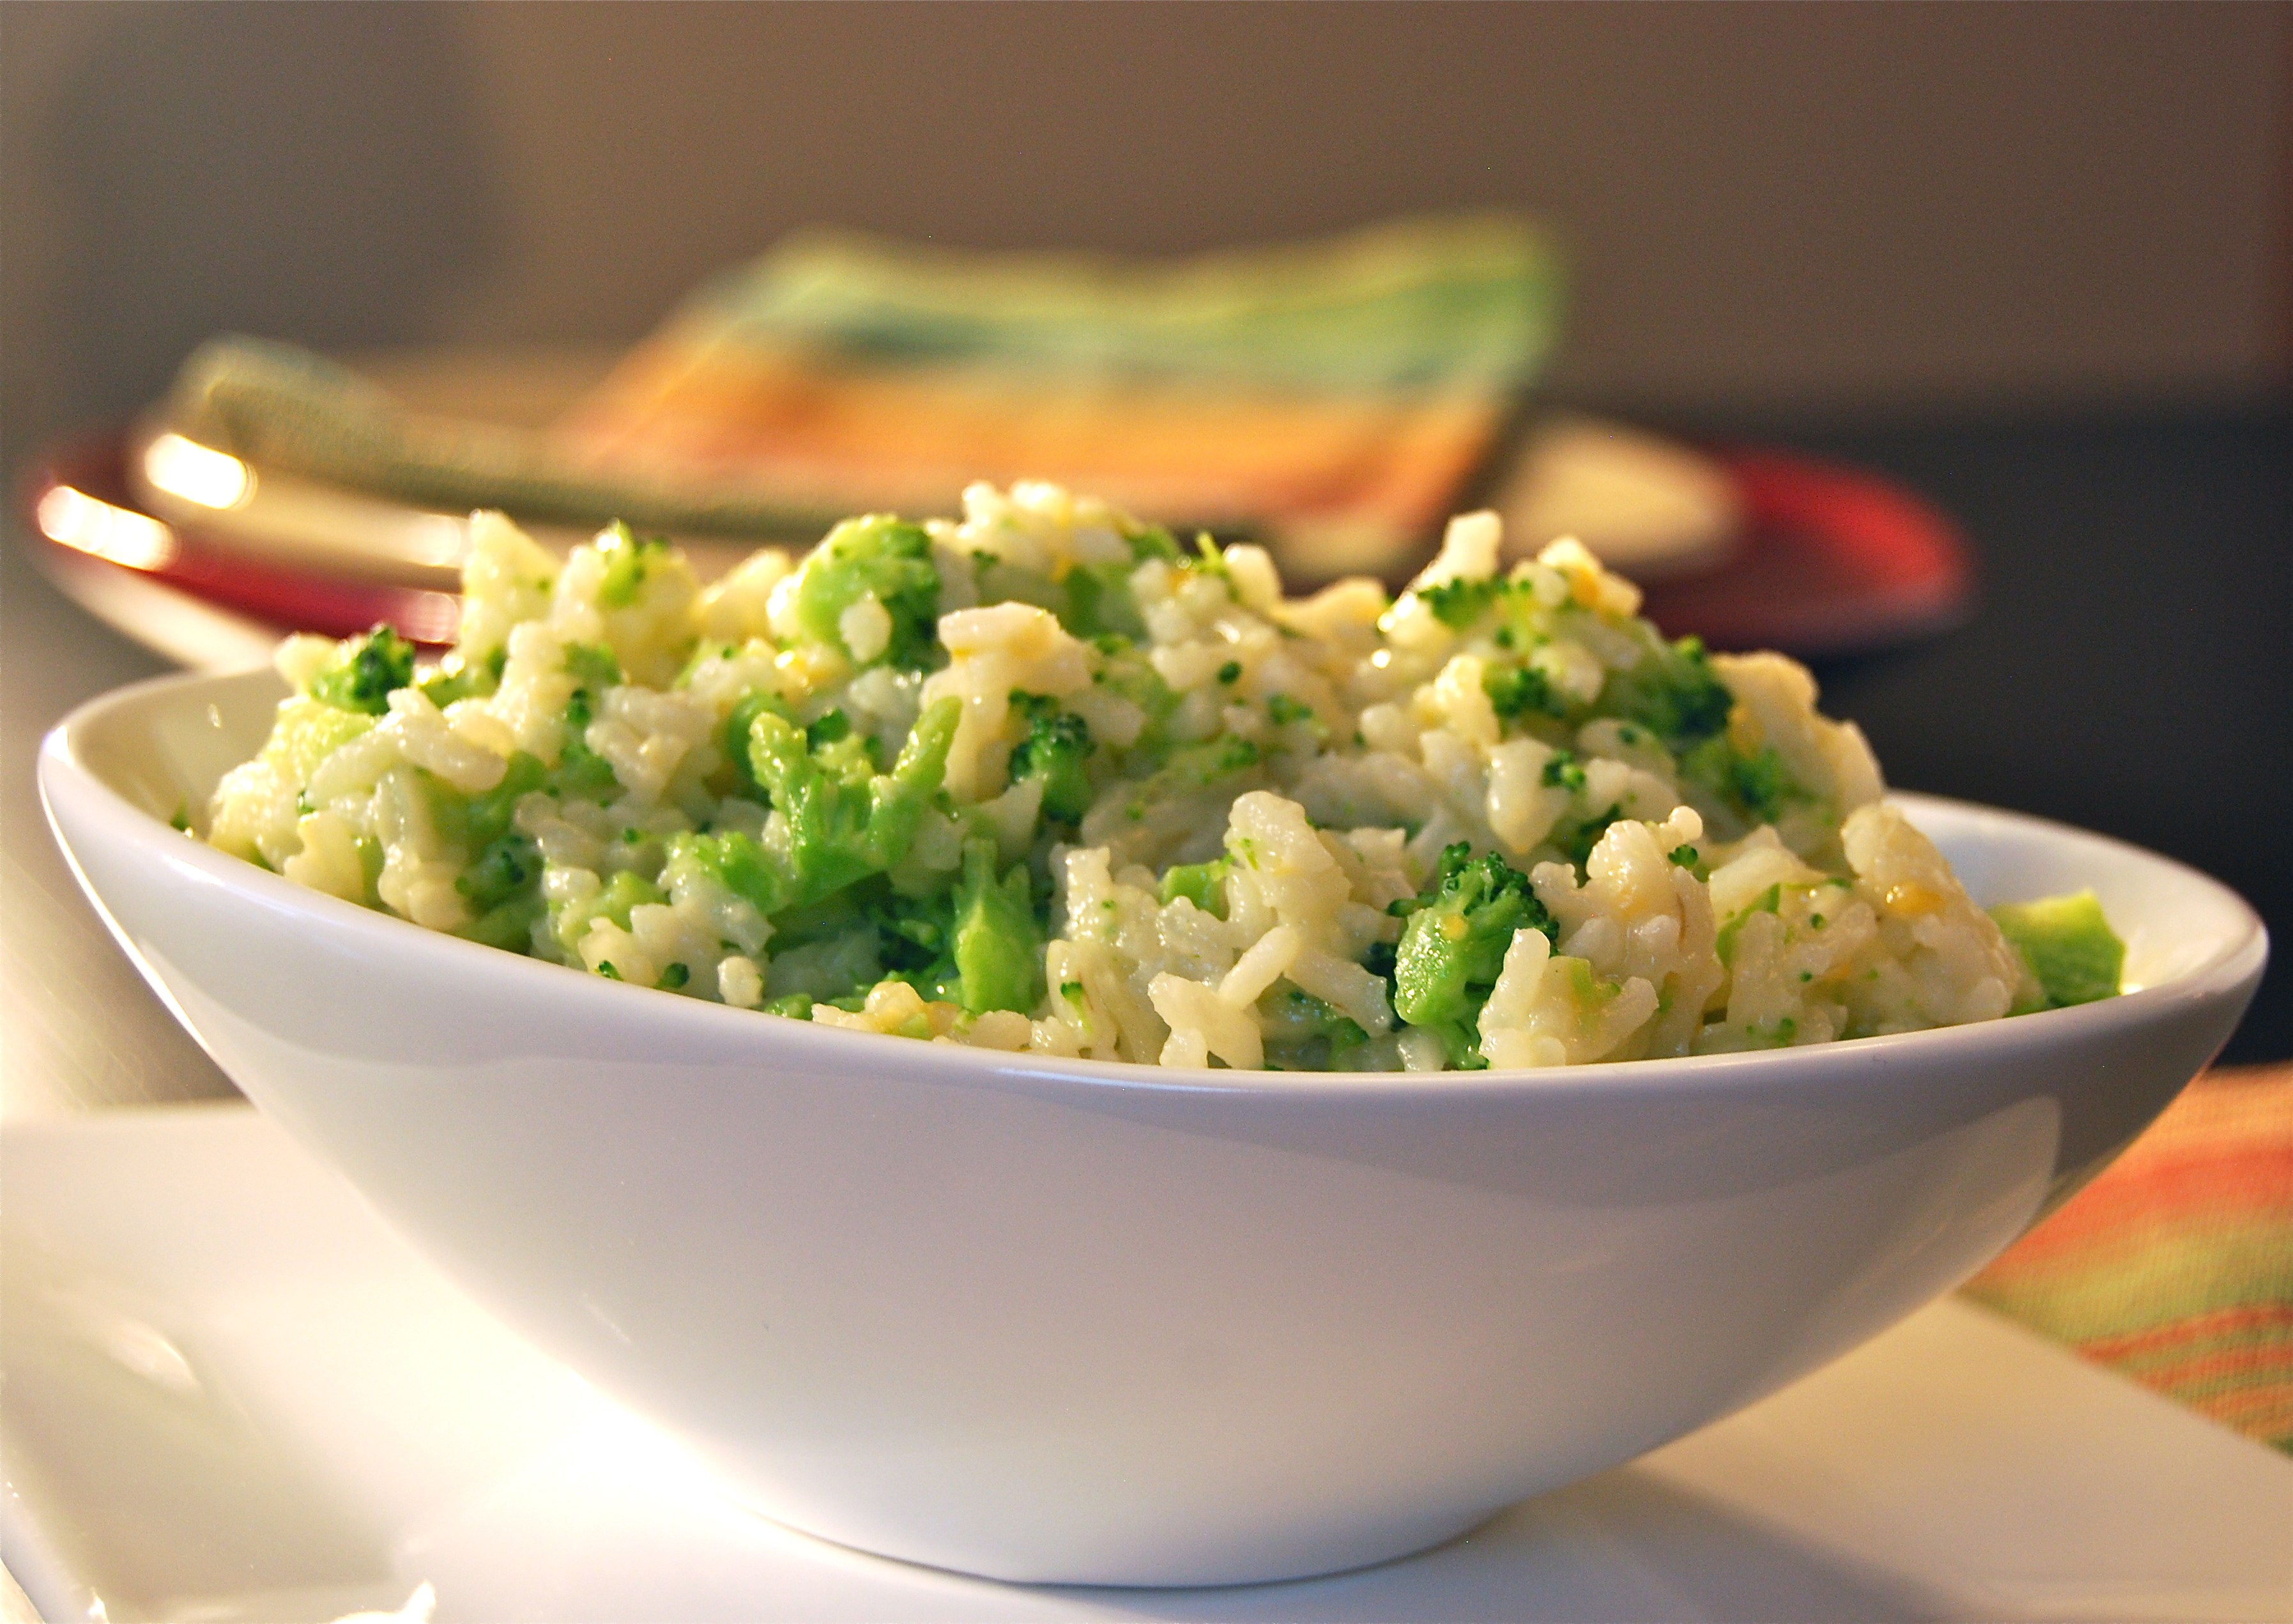 Cheesy Rice With Broccoli